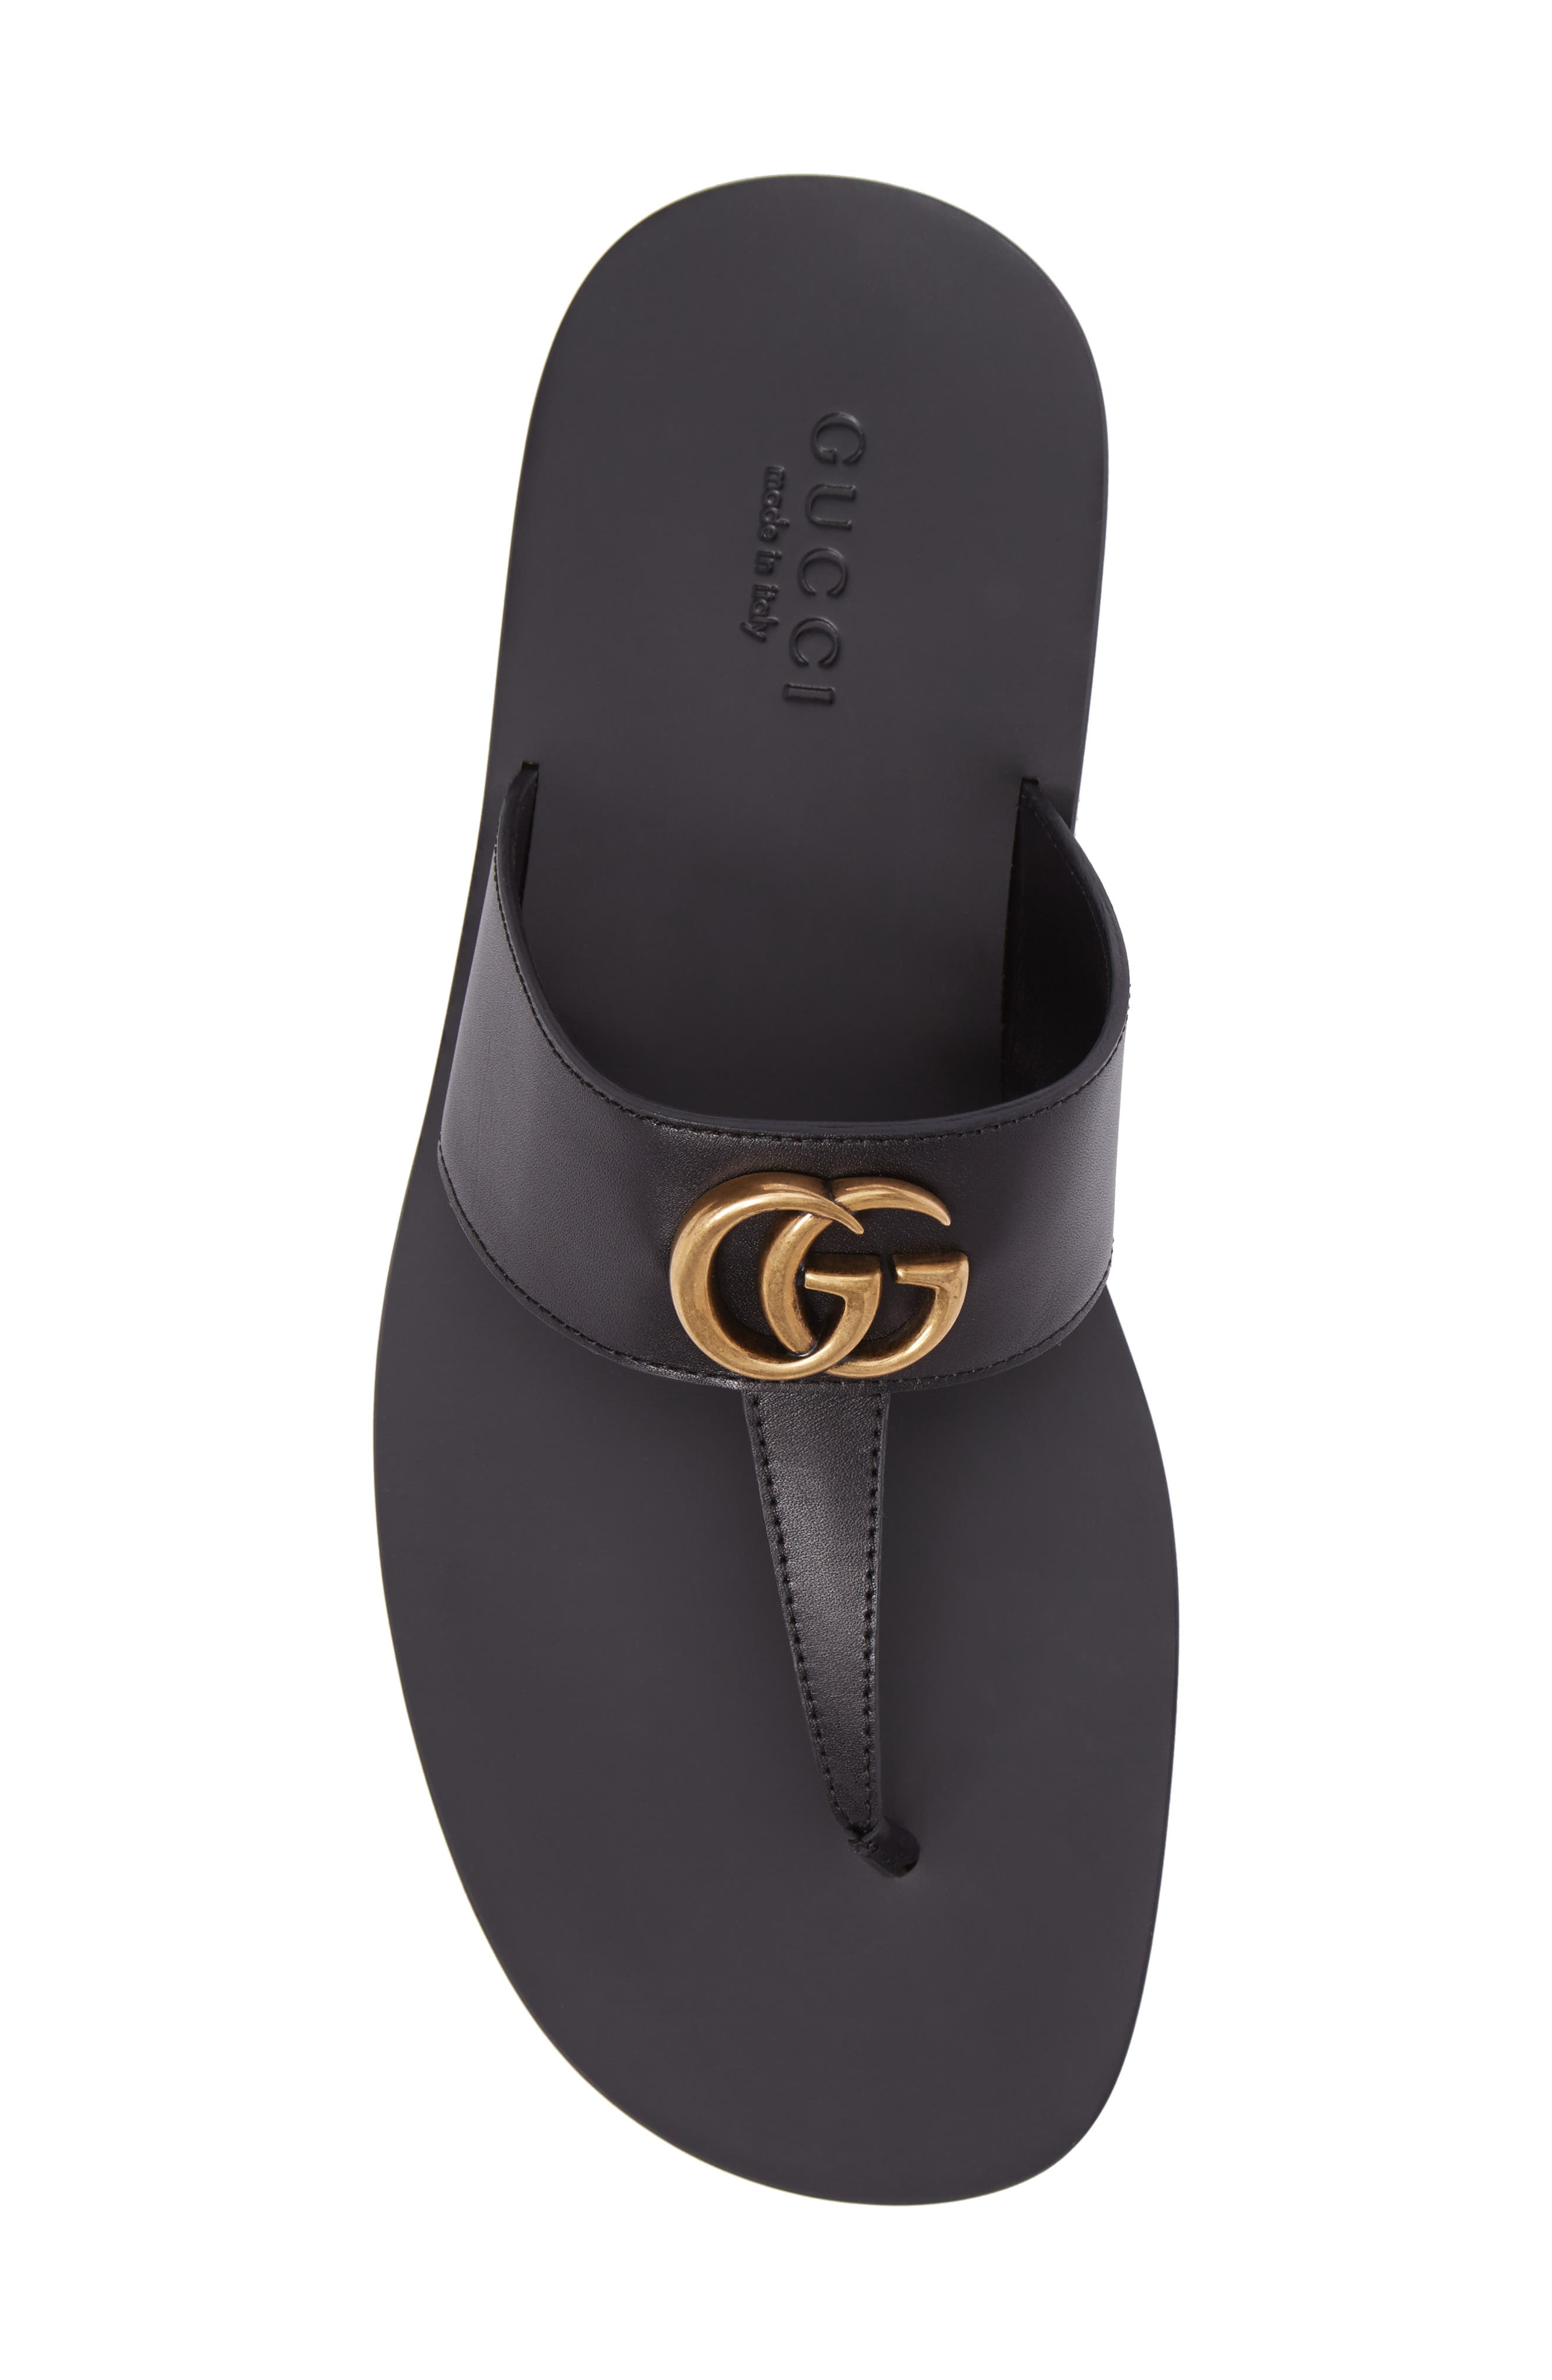 GUCCI, Marmont Double G Leather Thong Sandal, Alternate thumbnail 5, color, BLACK/ GOLD